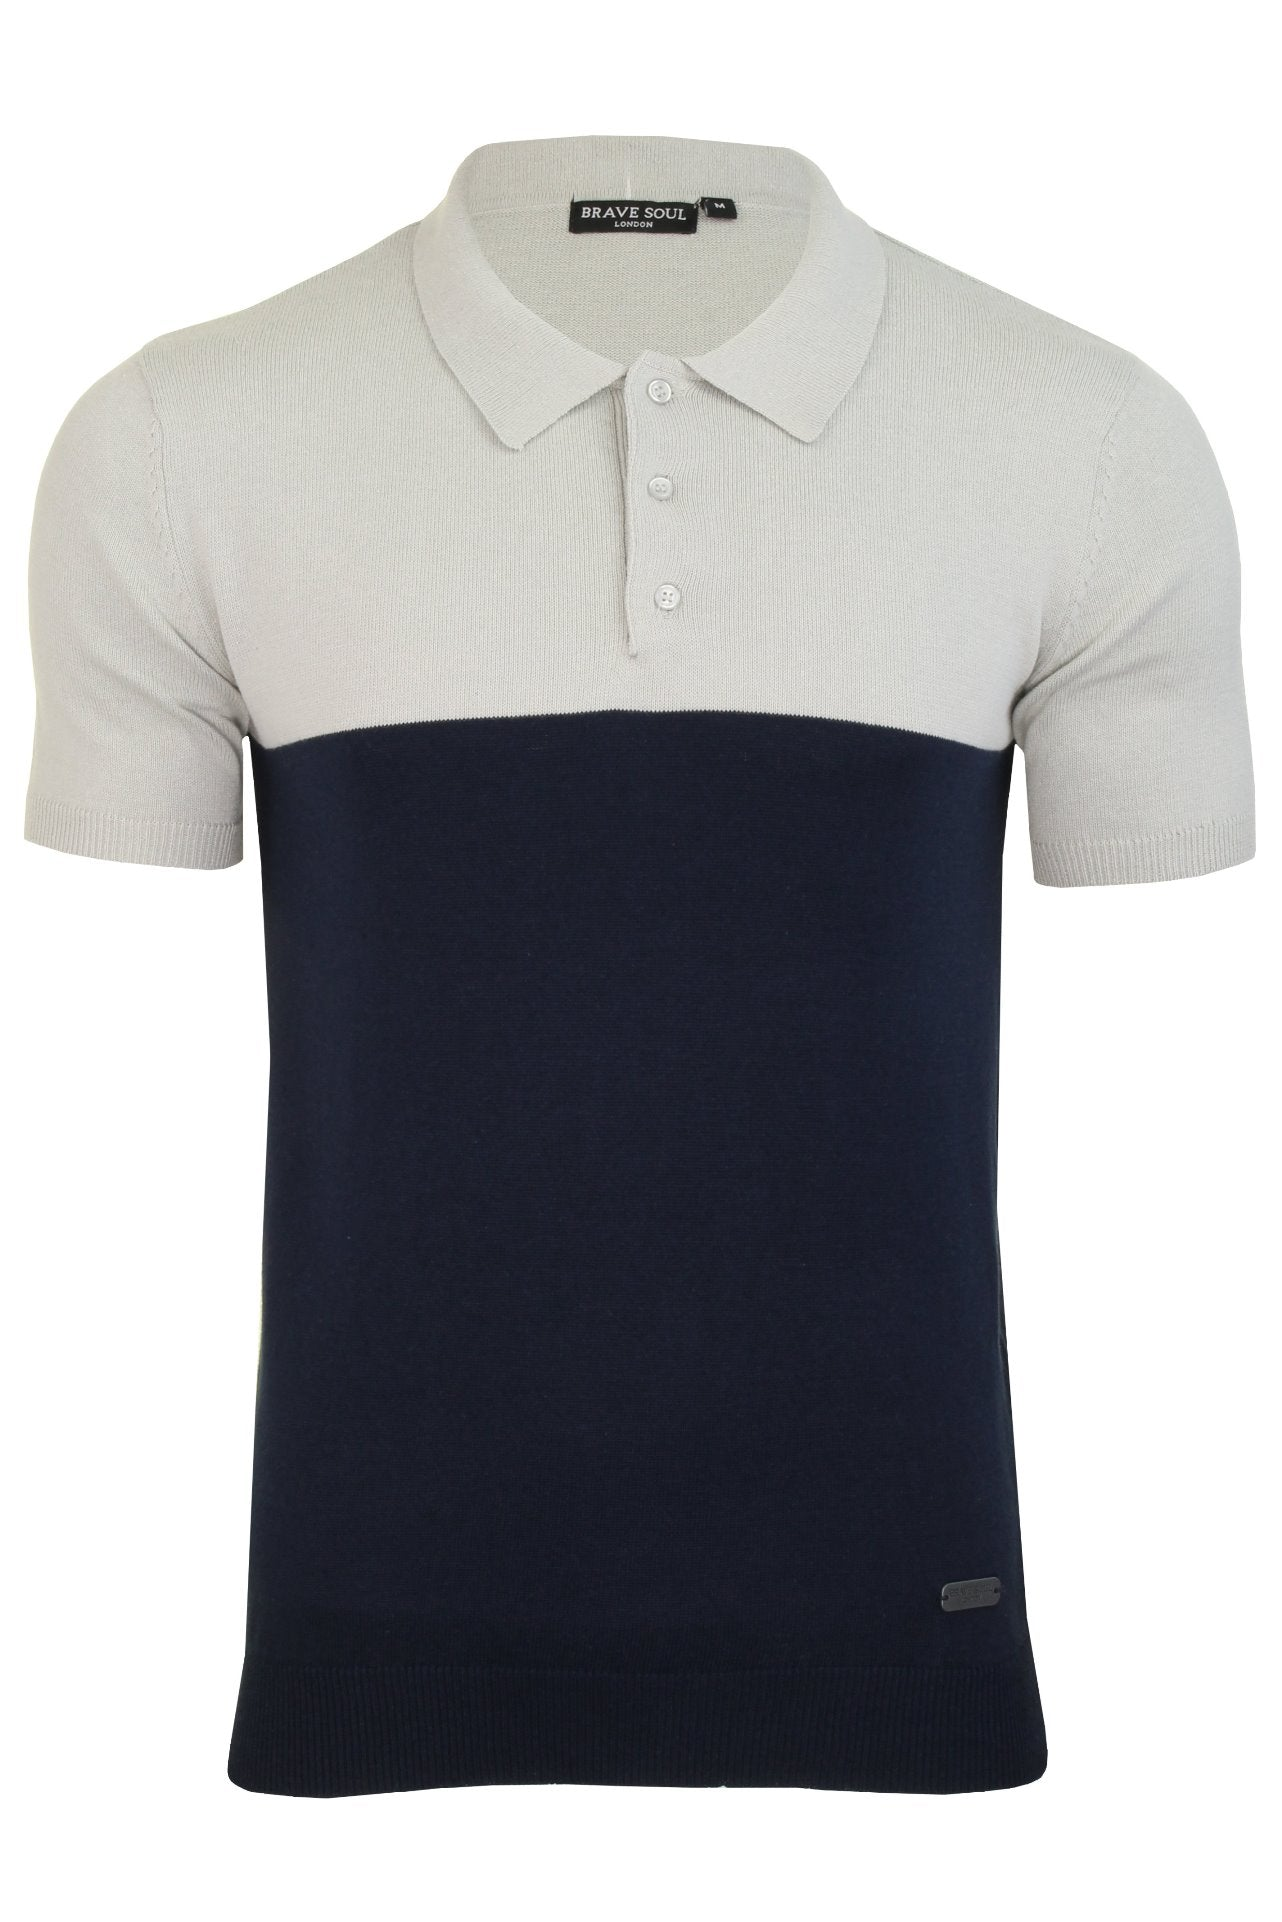 Mens Brave Soul 'Discover' Knitted Polo Shirt-Main Image